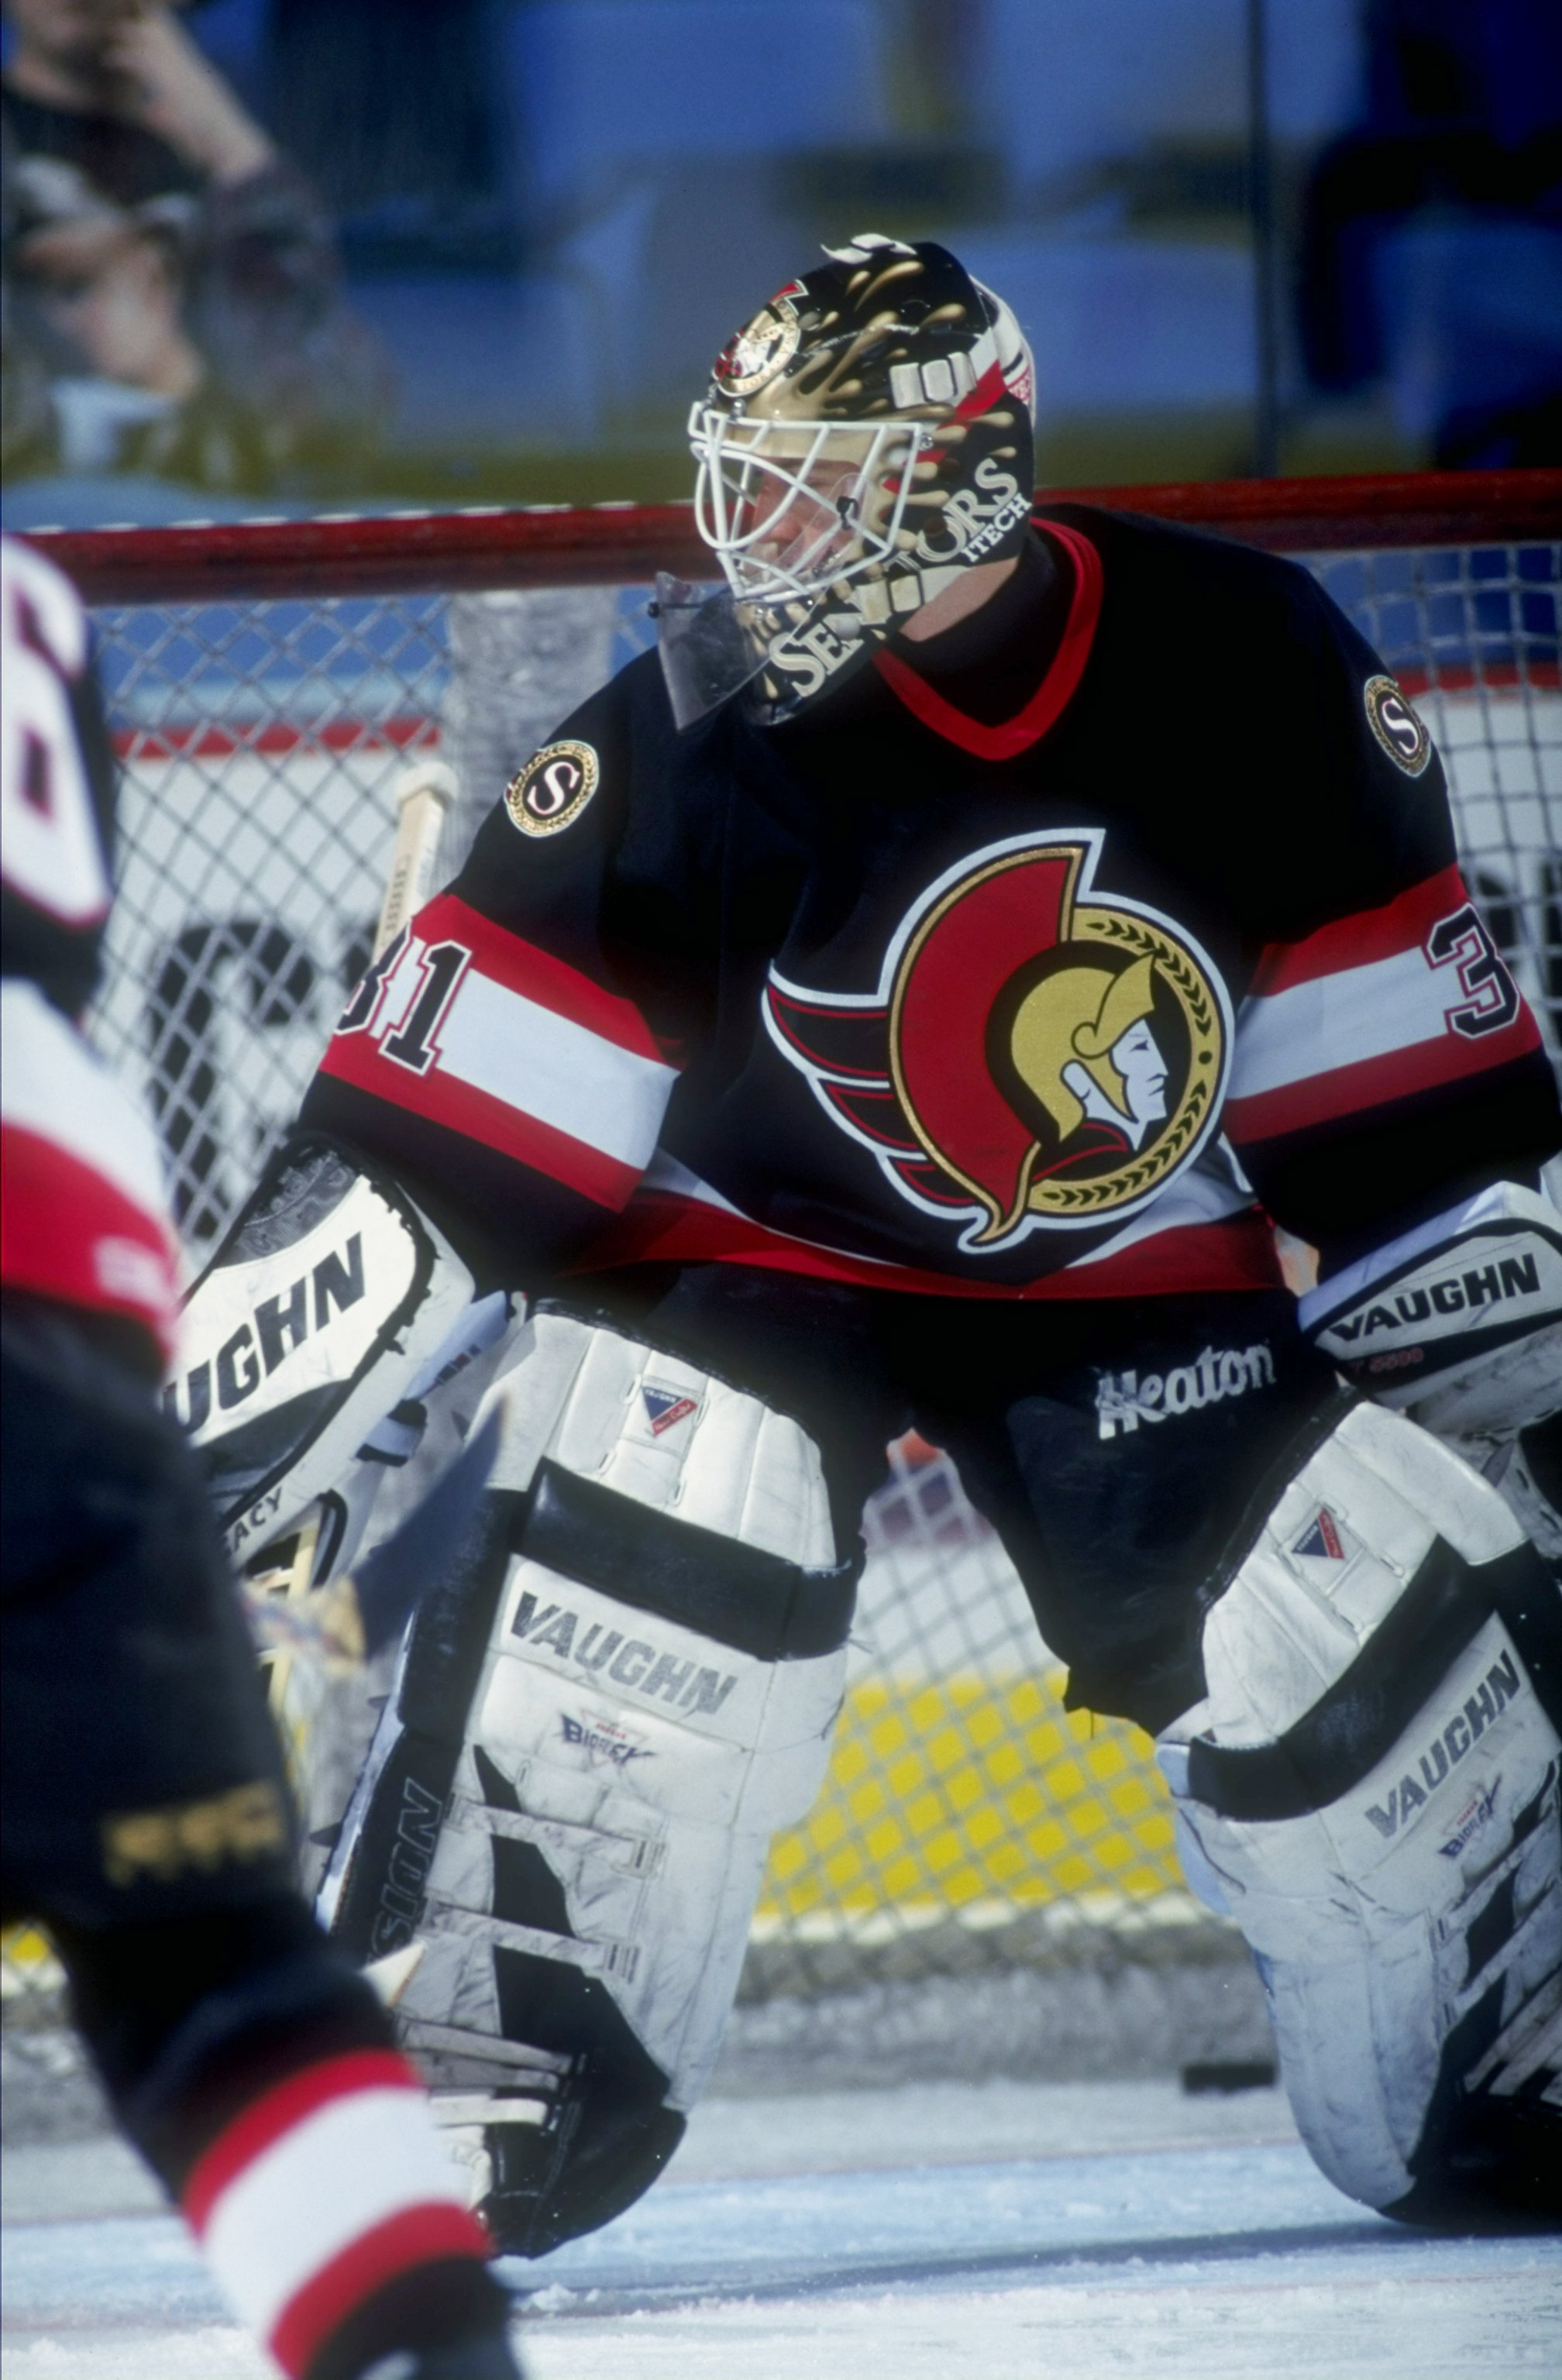 19 Apr 1998  Goaltender Ron Tugnut of the Ottawa Senators in action during  a game 21230e31f